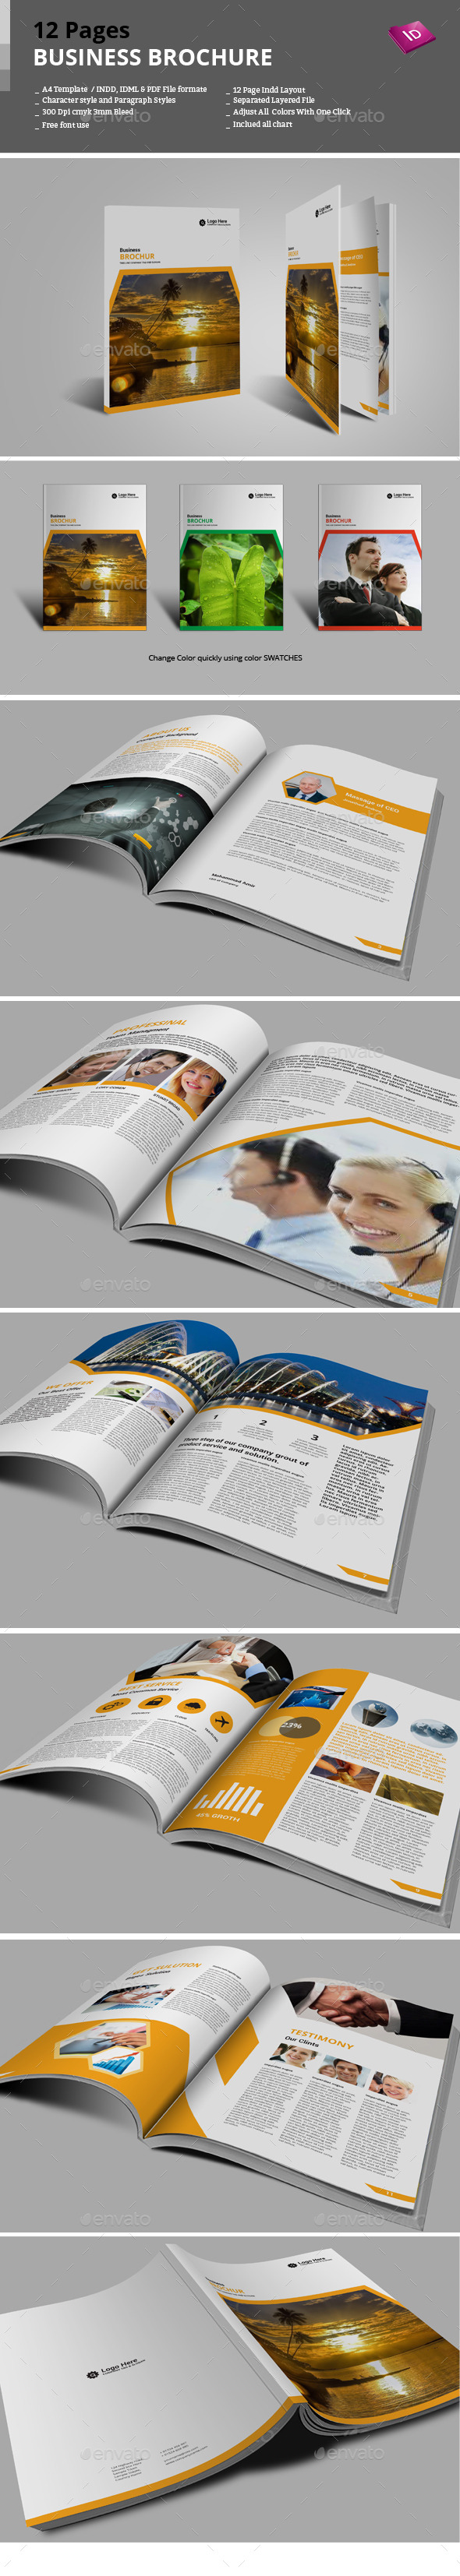 GraphicRiver 12 Pages Business Brochure 9276838